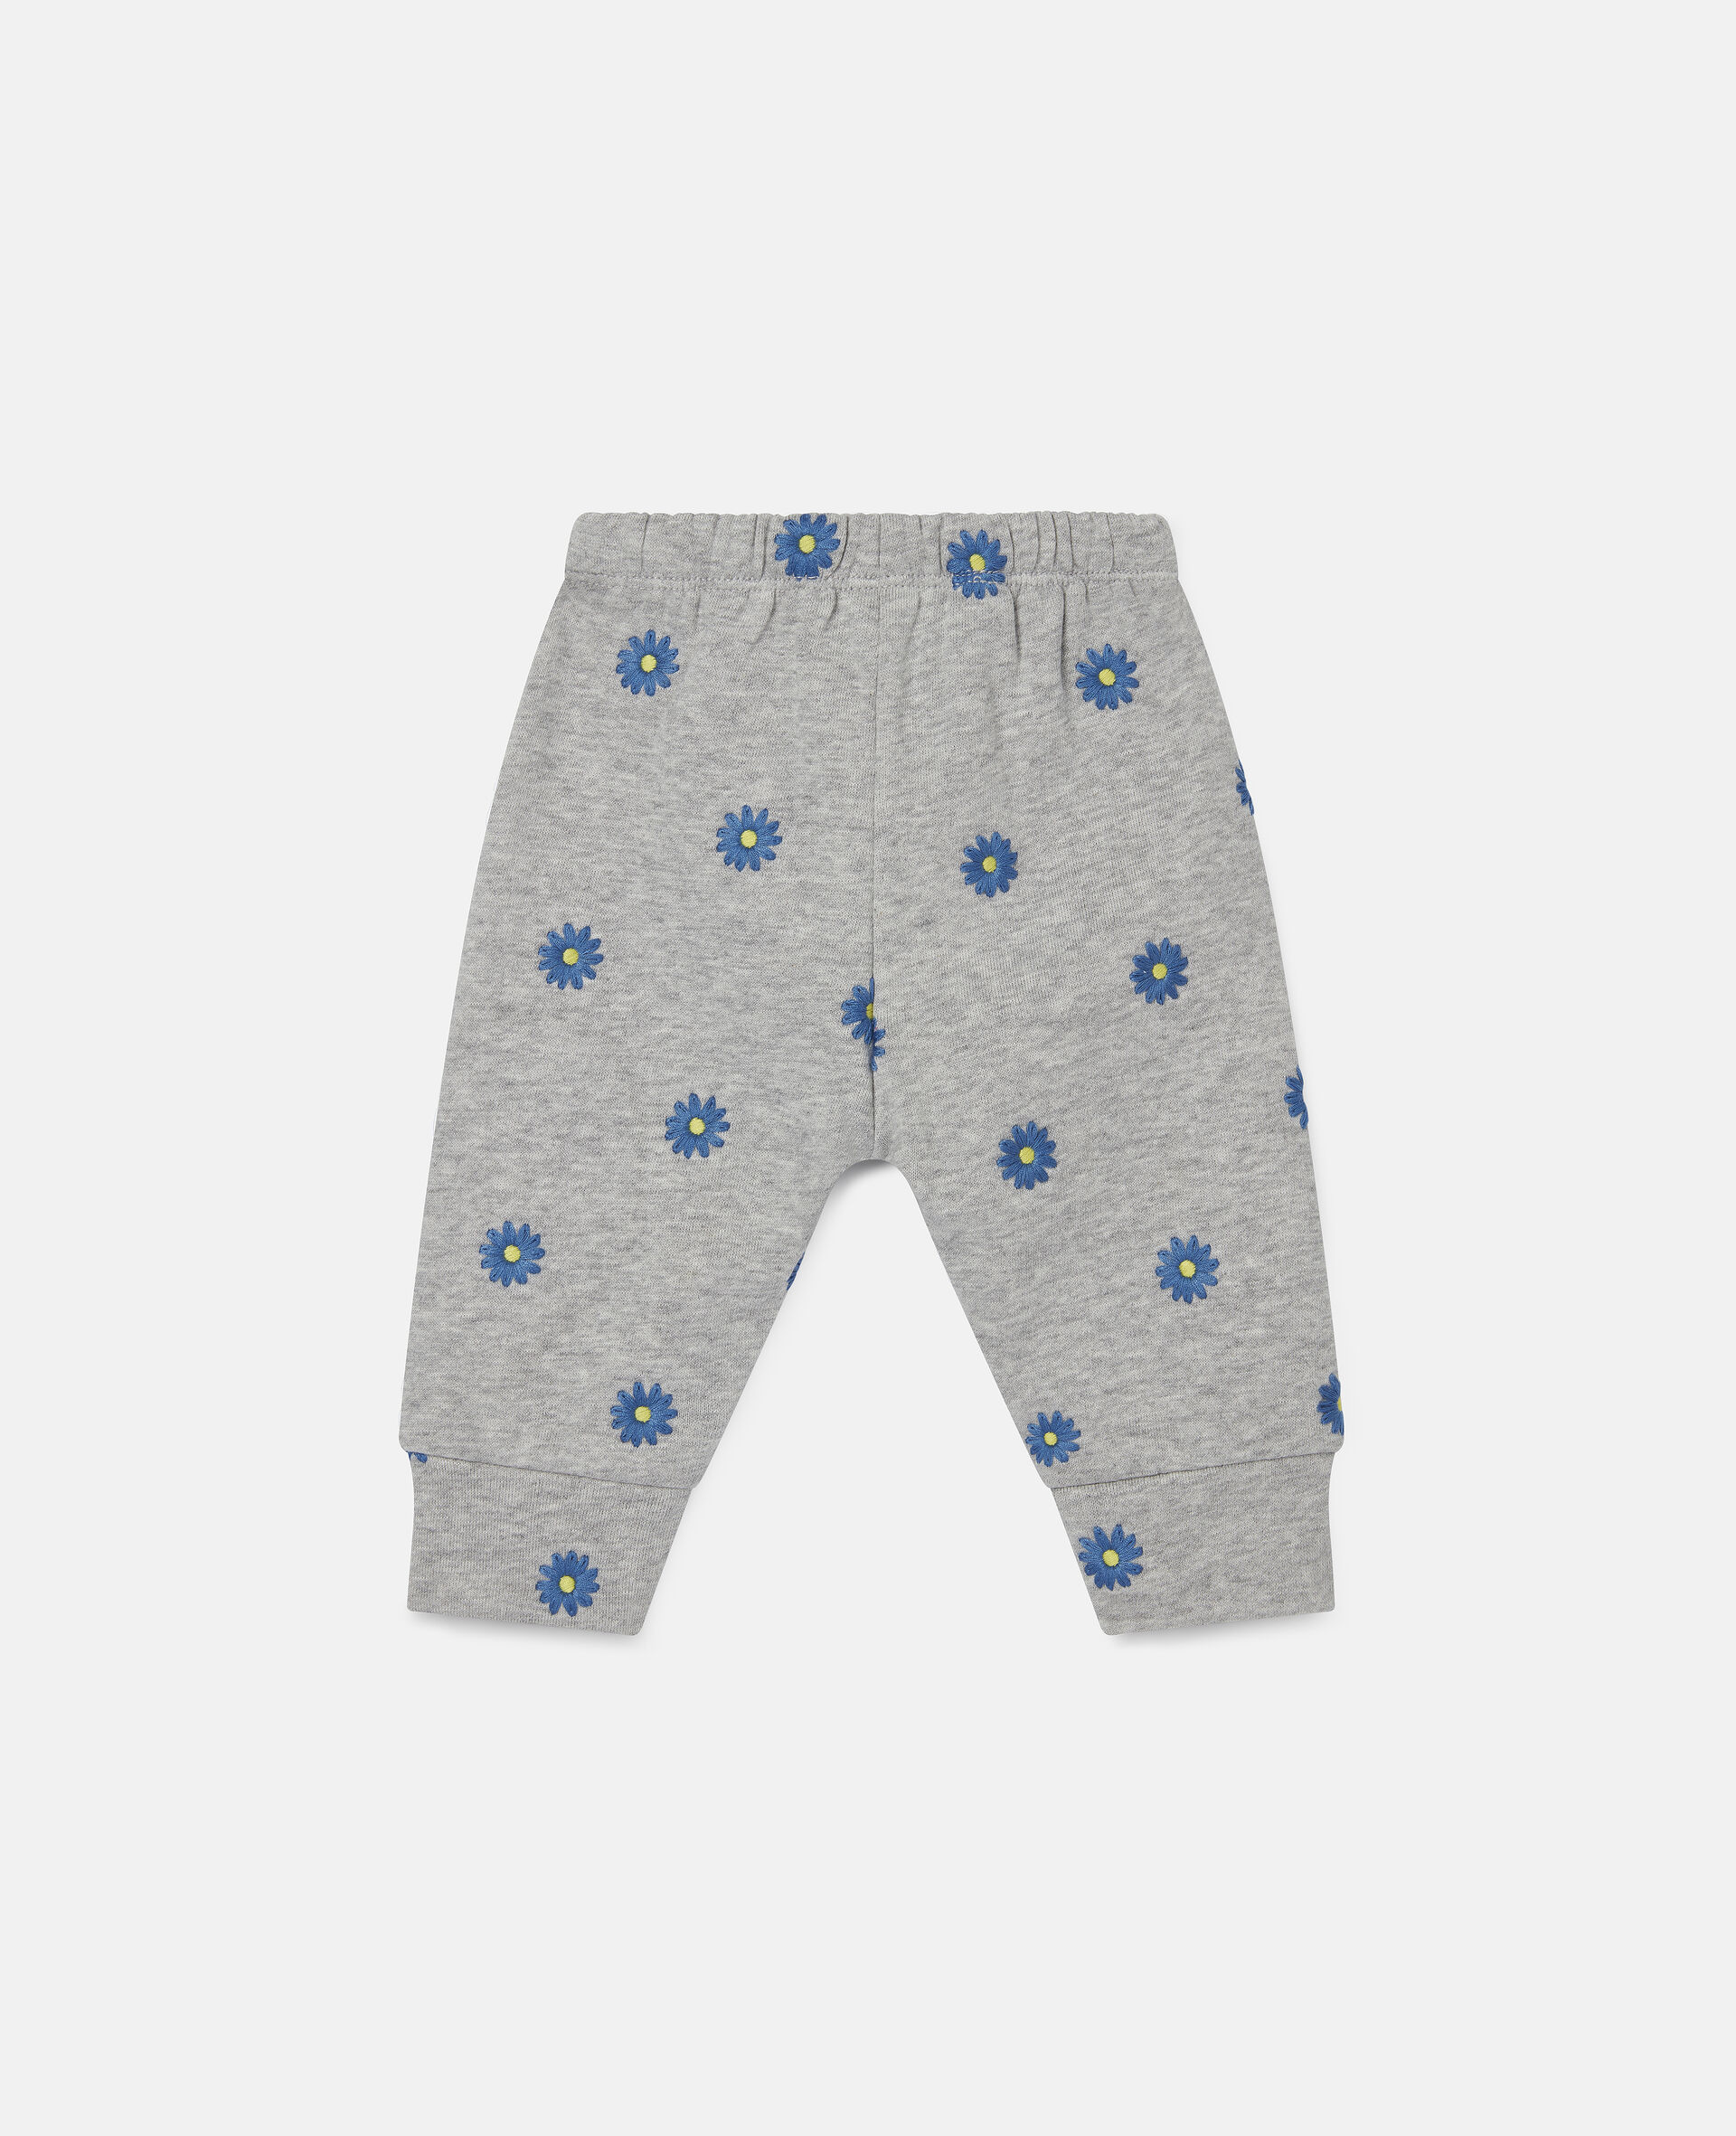 Embroidered Daisies Cotton Fleece Joggers-Grey-large image number 3